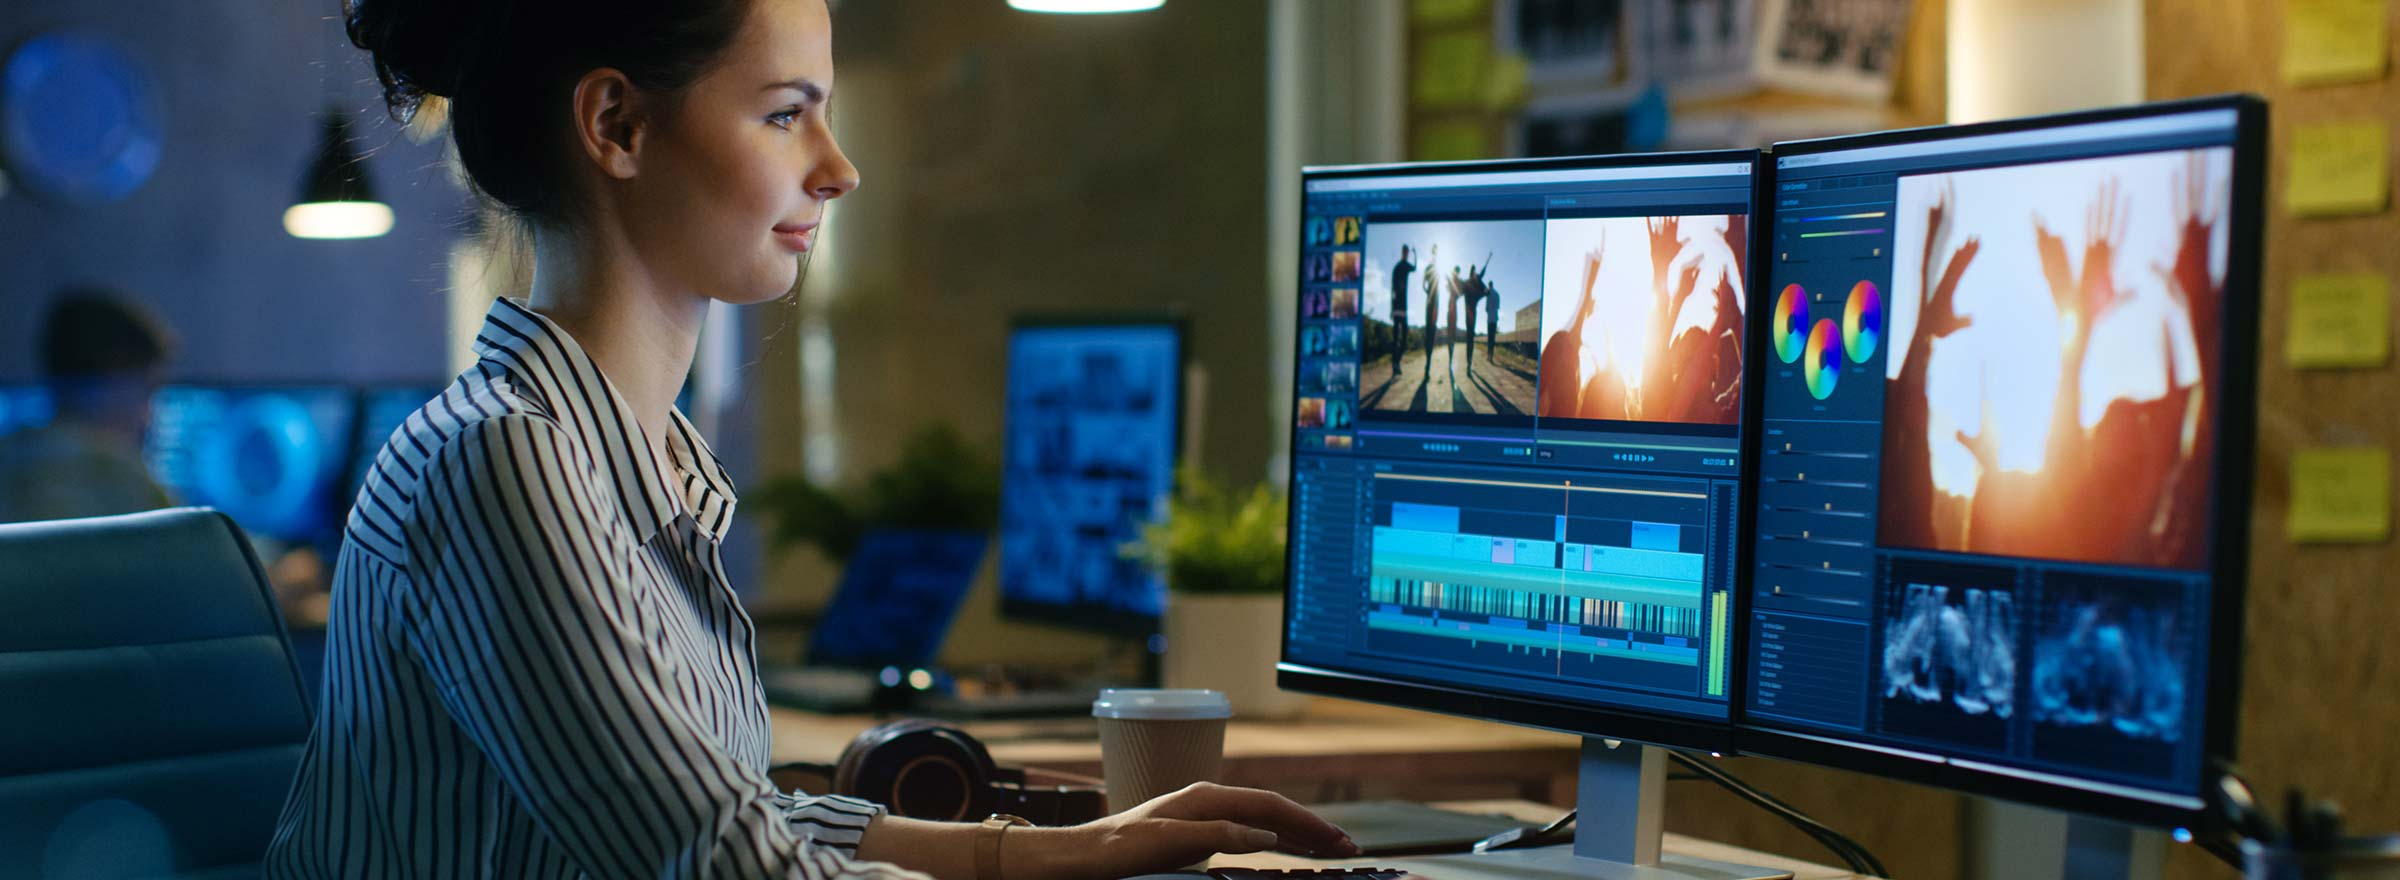 woman sitting in front of two computer screens and editing a video